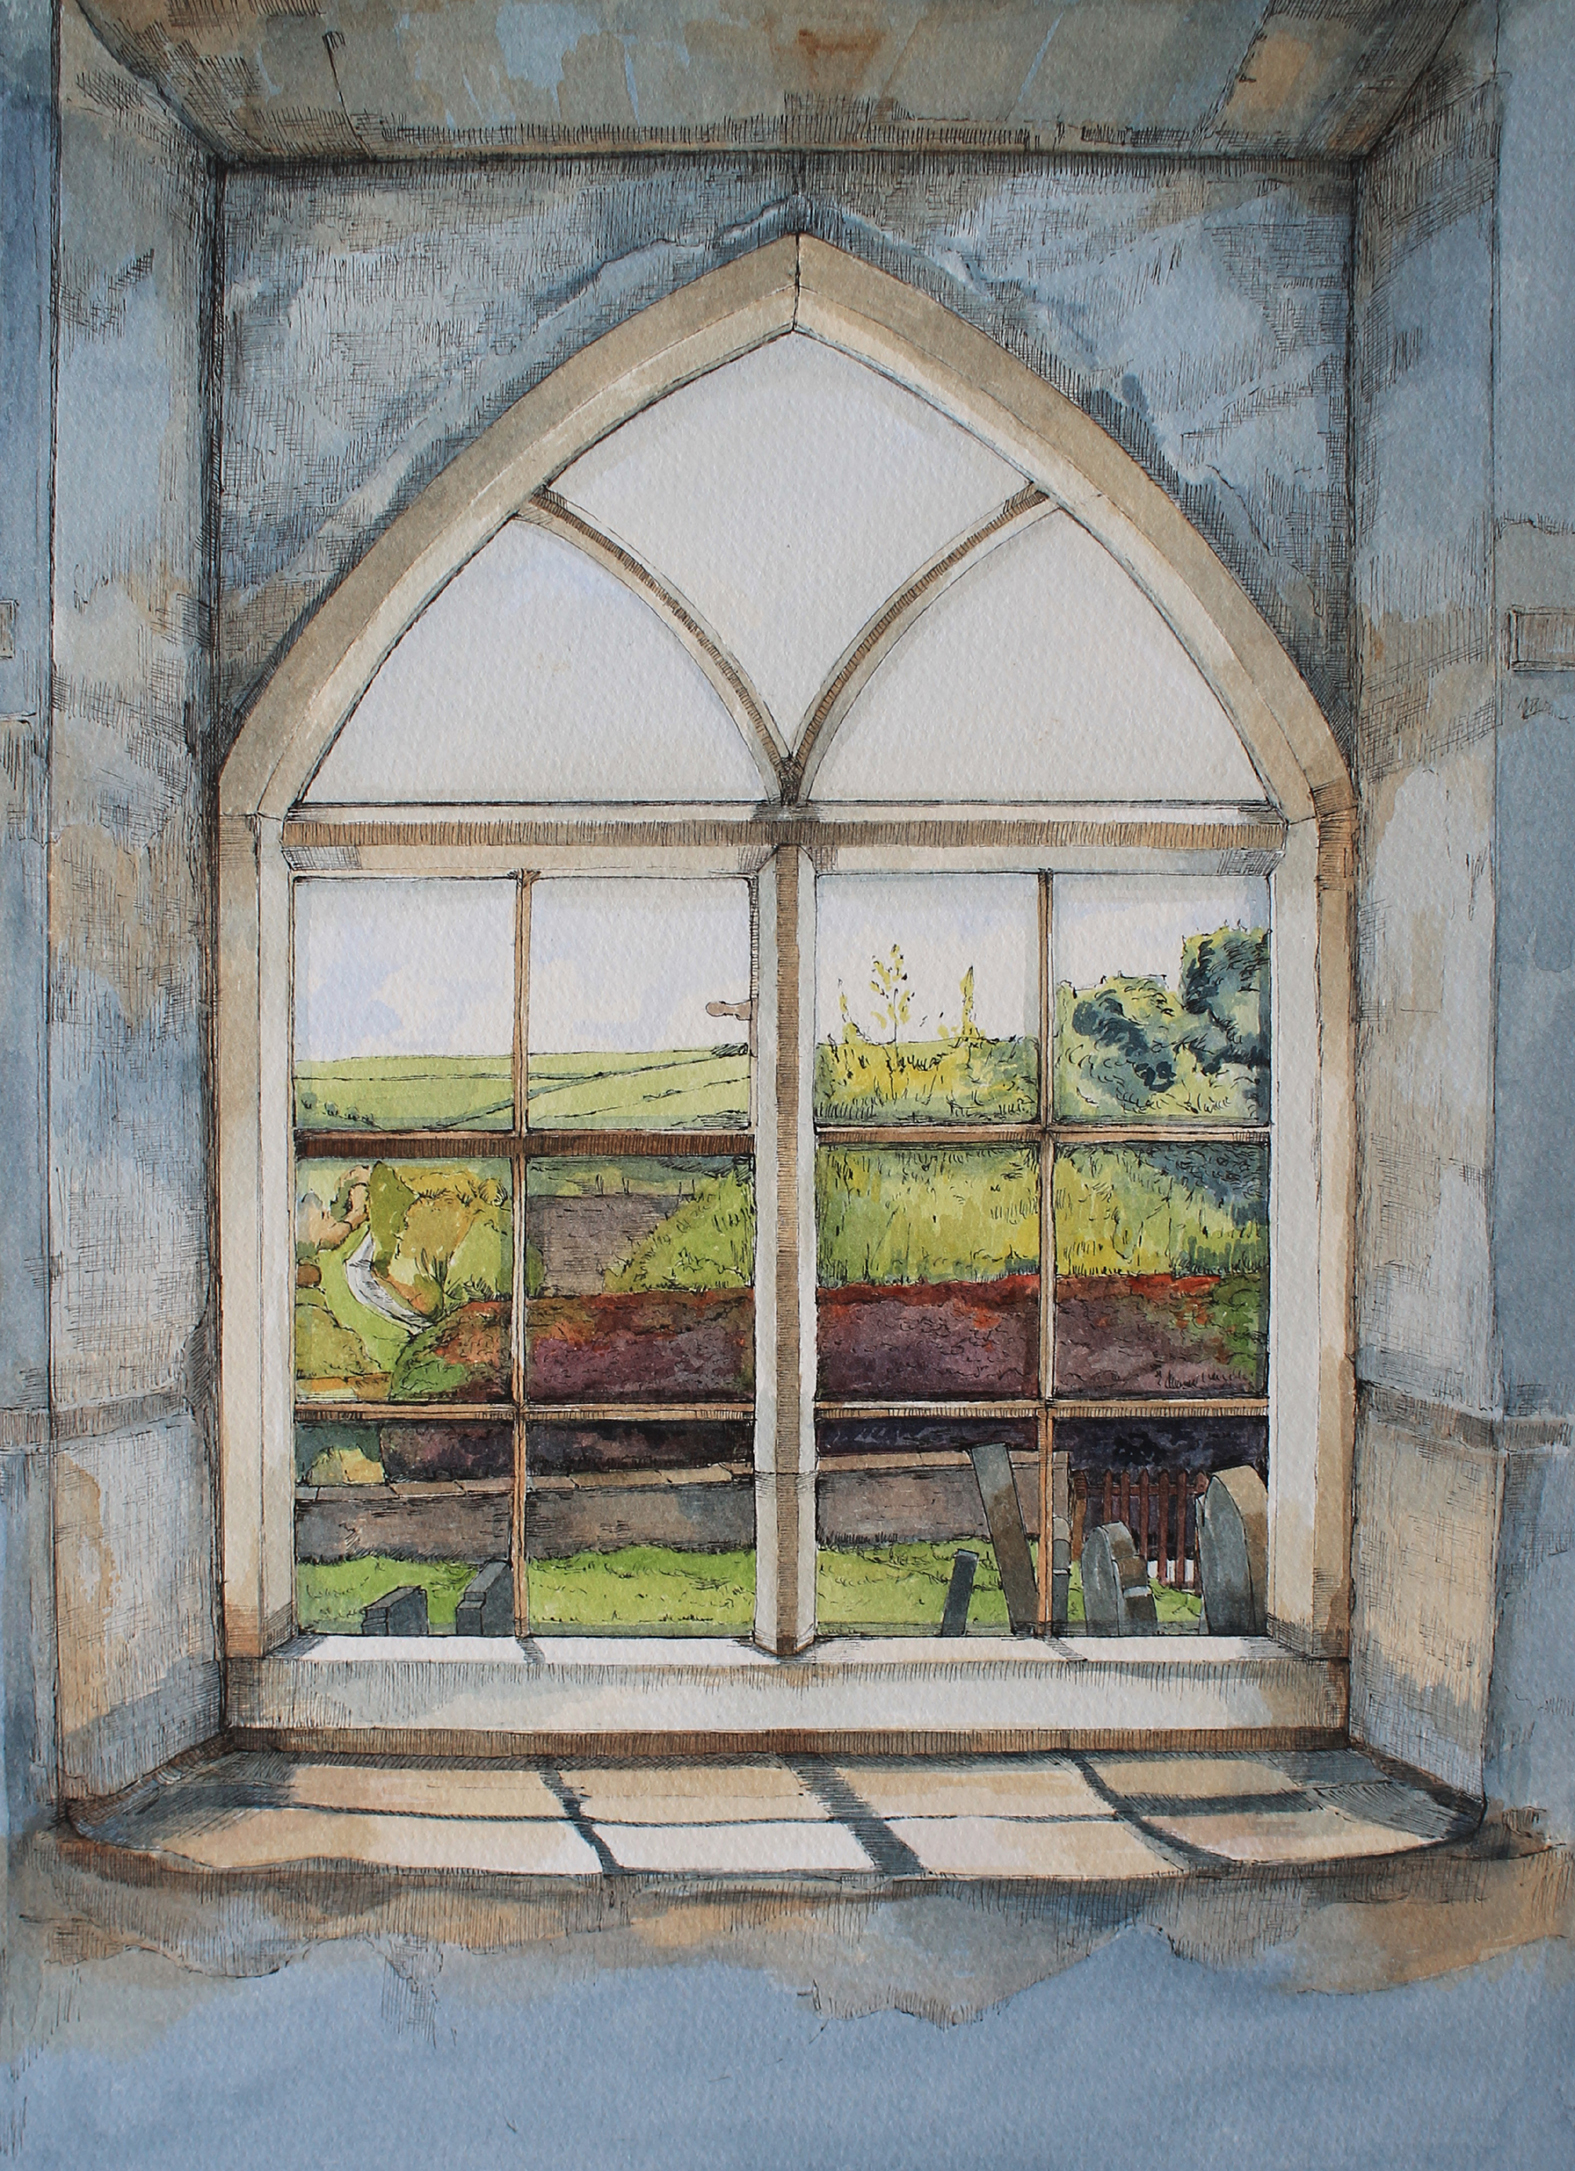 Window at Black Mountain Chapel